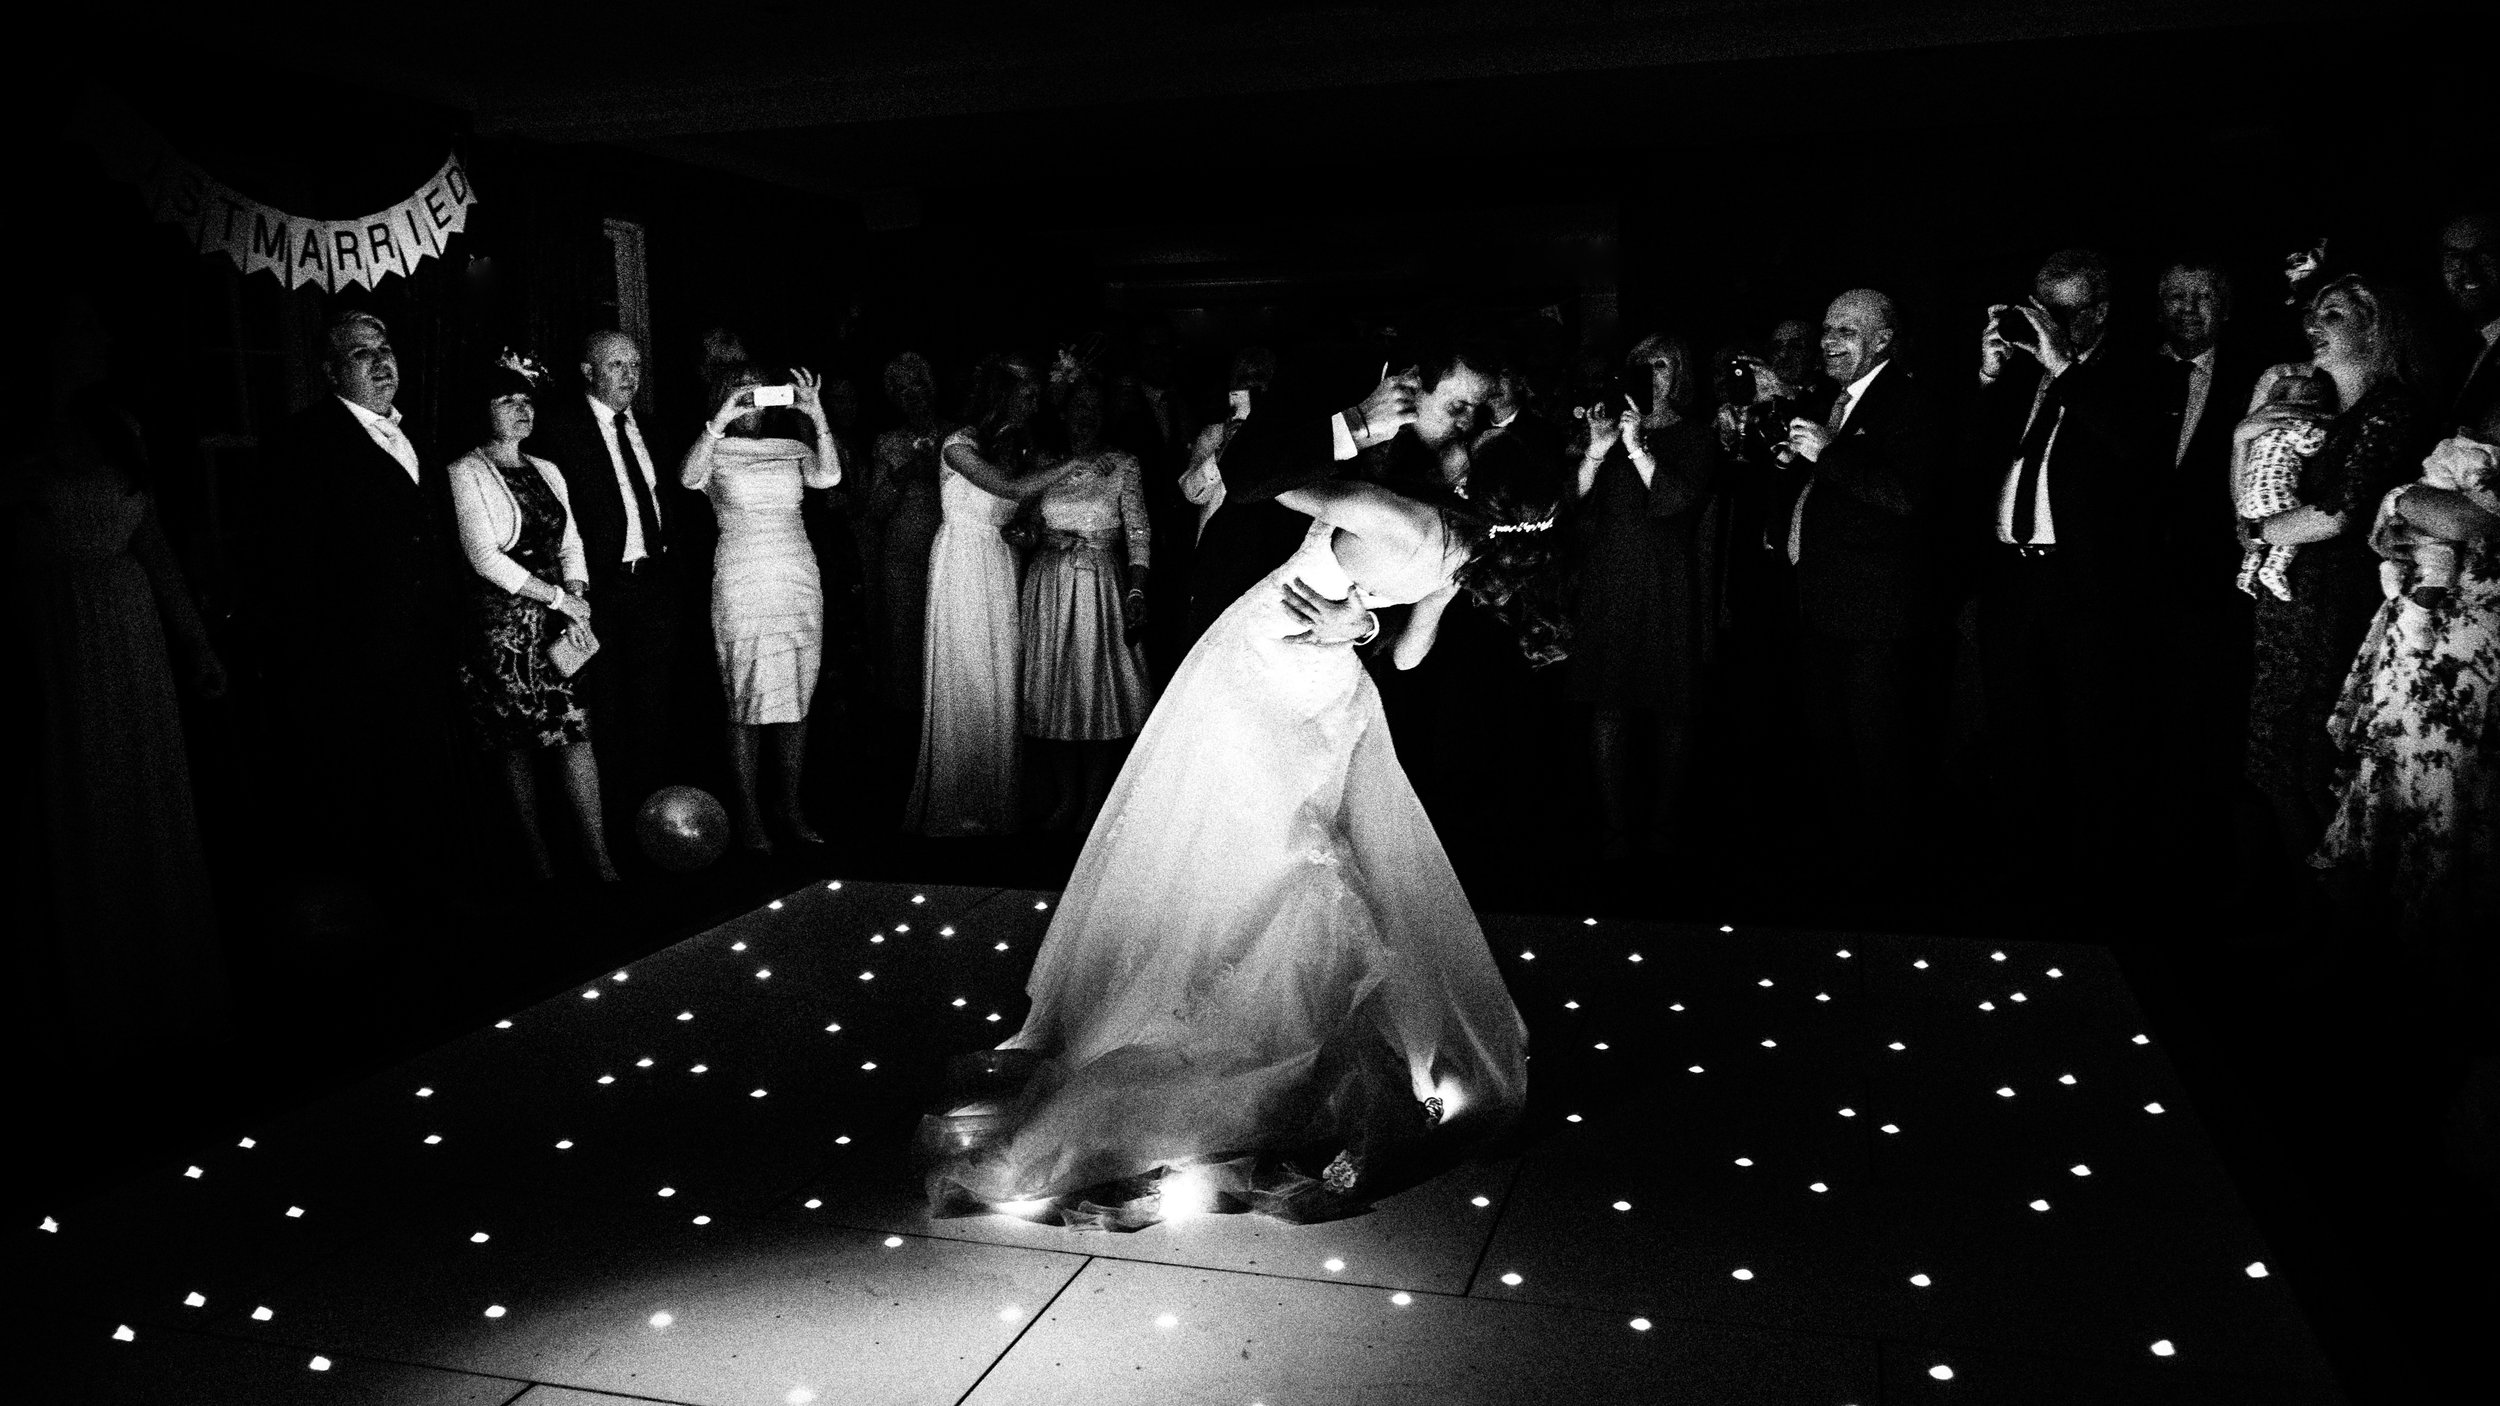 bride and groom dancing at whitley hall wedding venue in sheffield